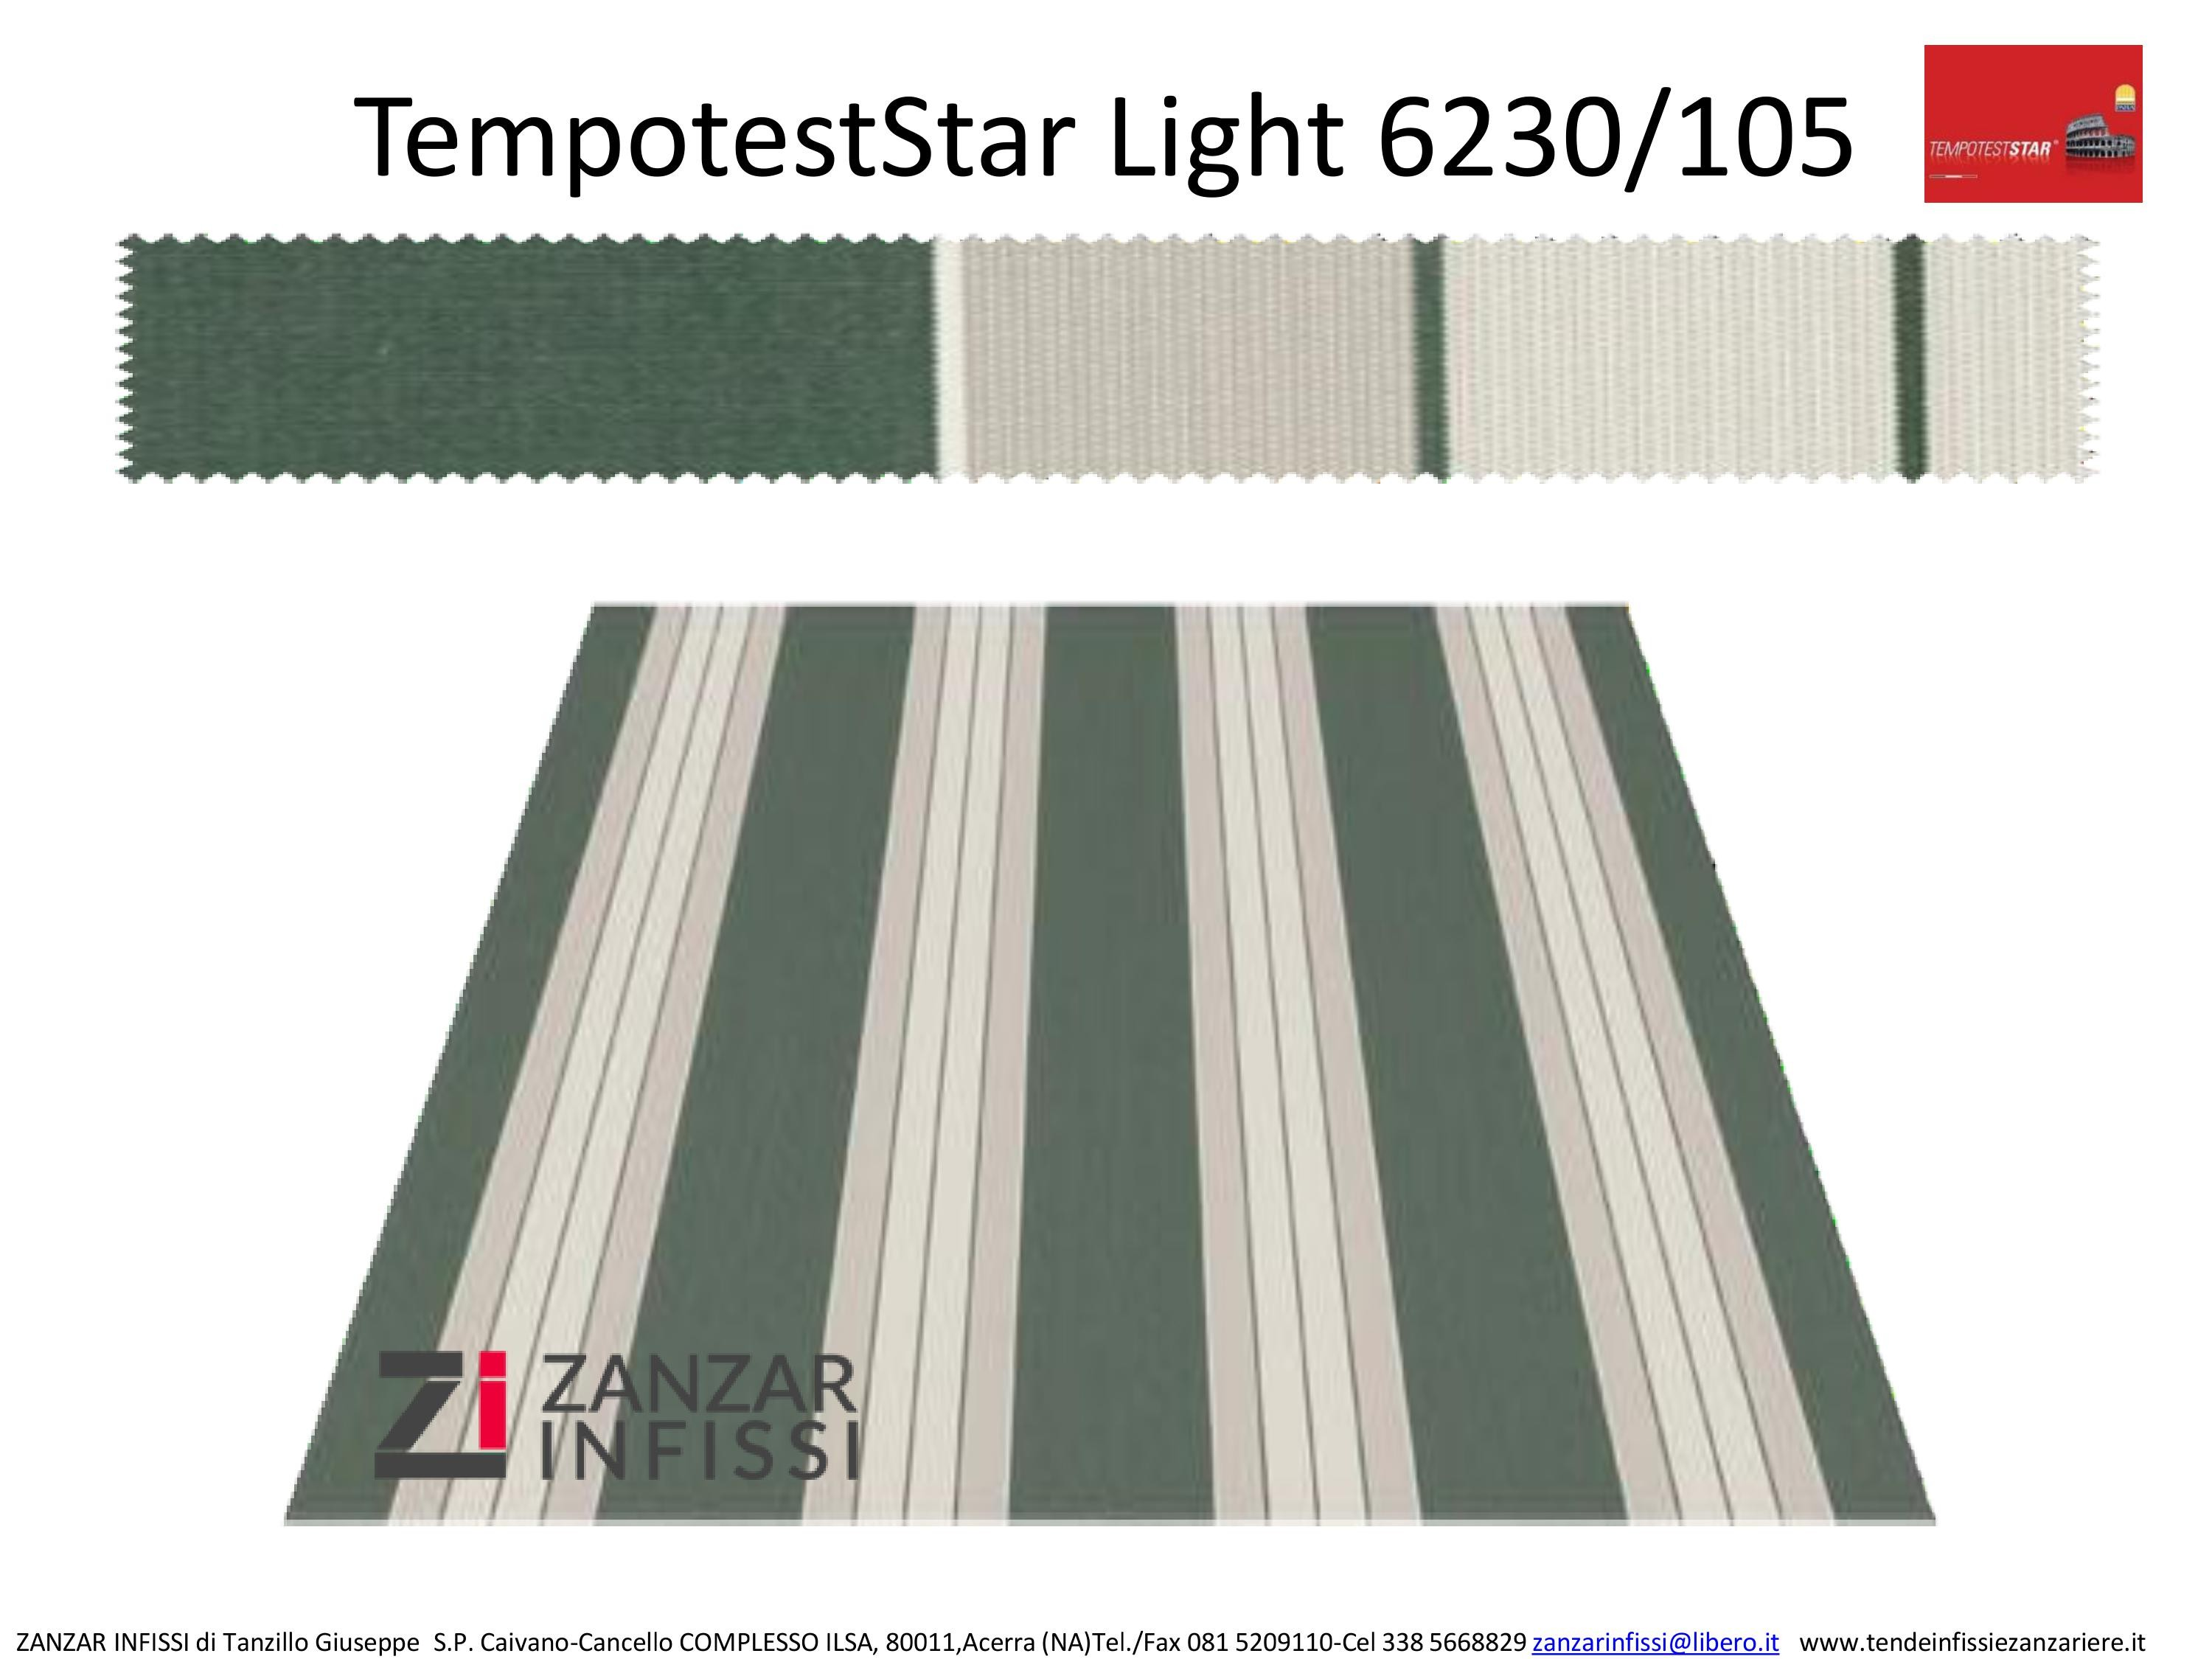 Tempotest star light 6230/105